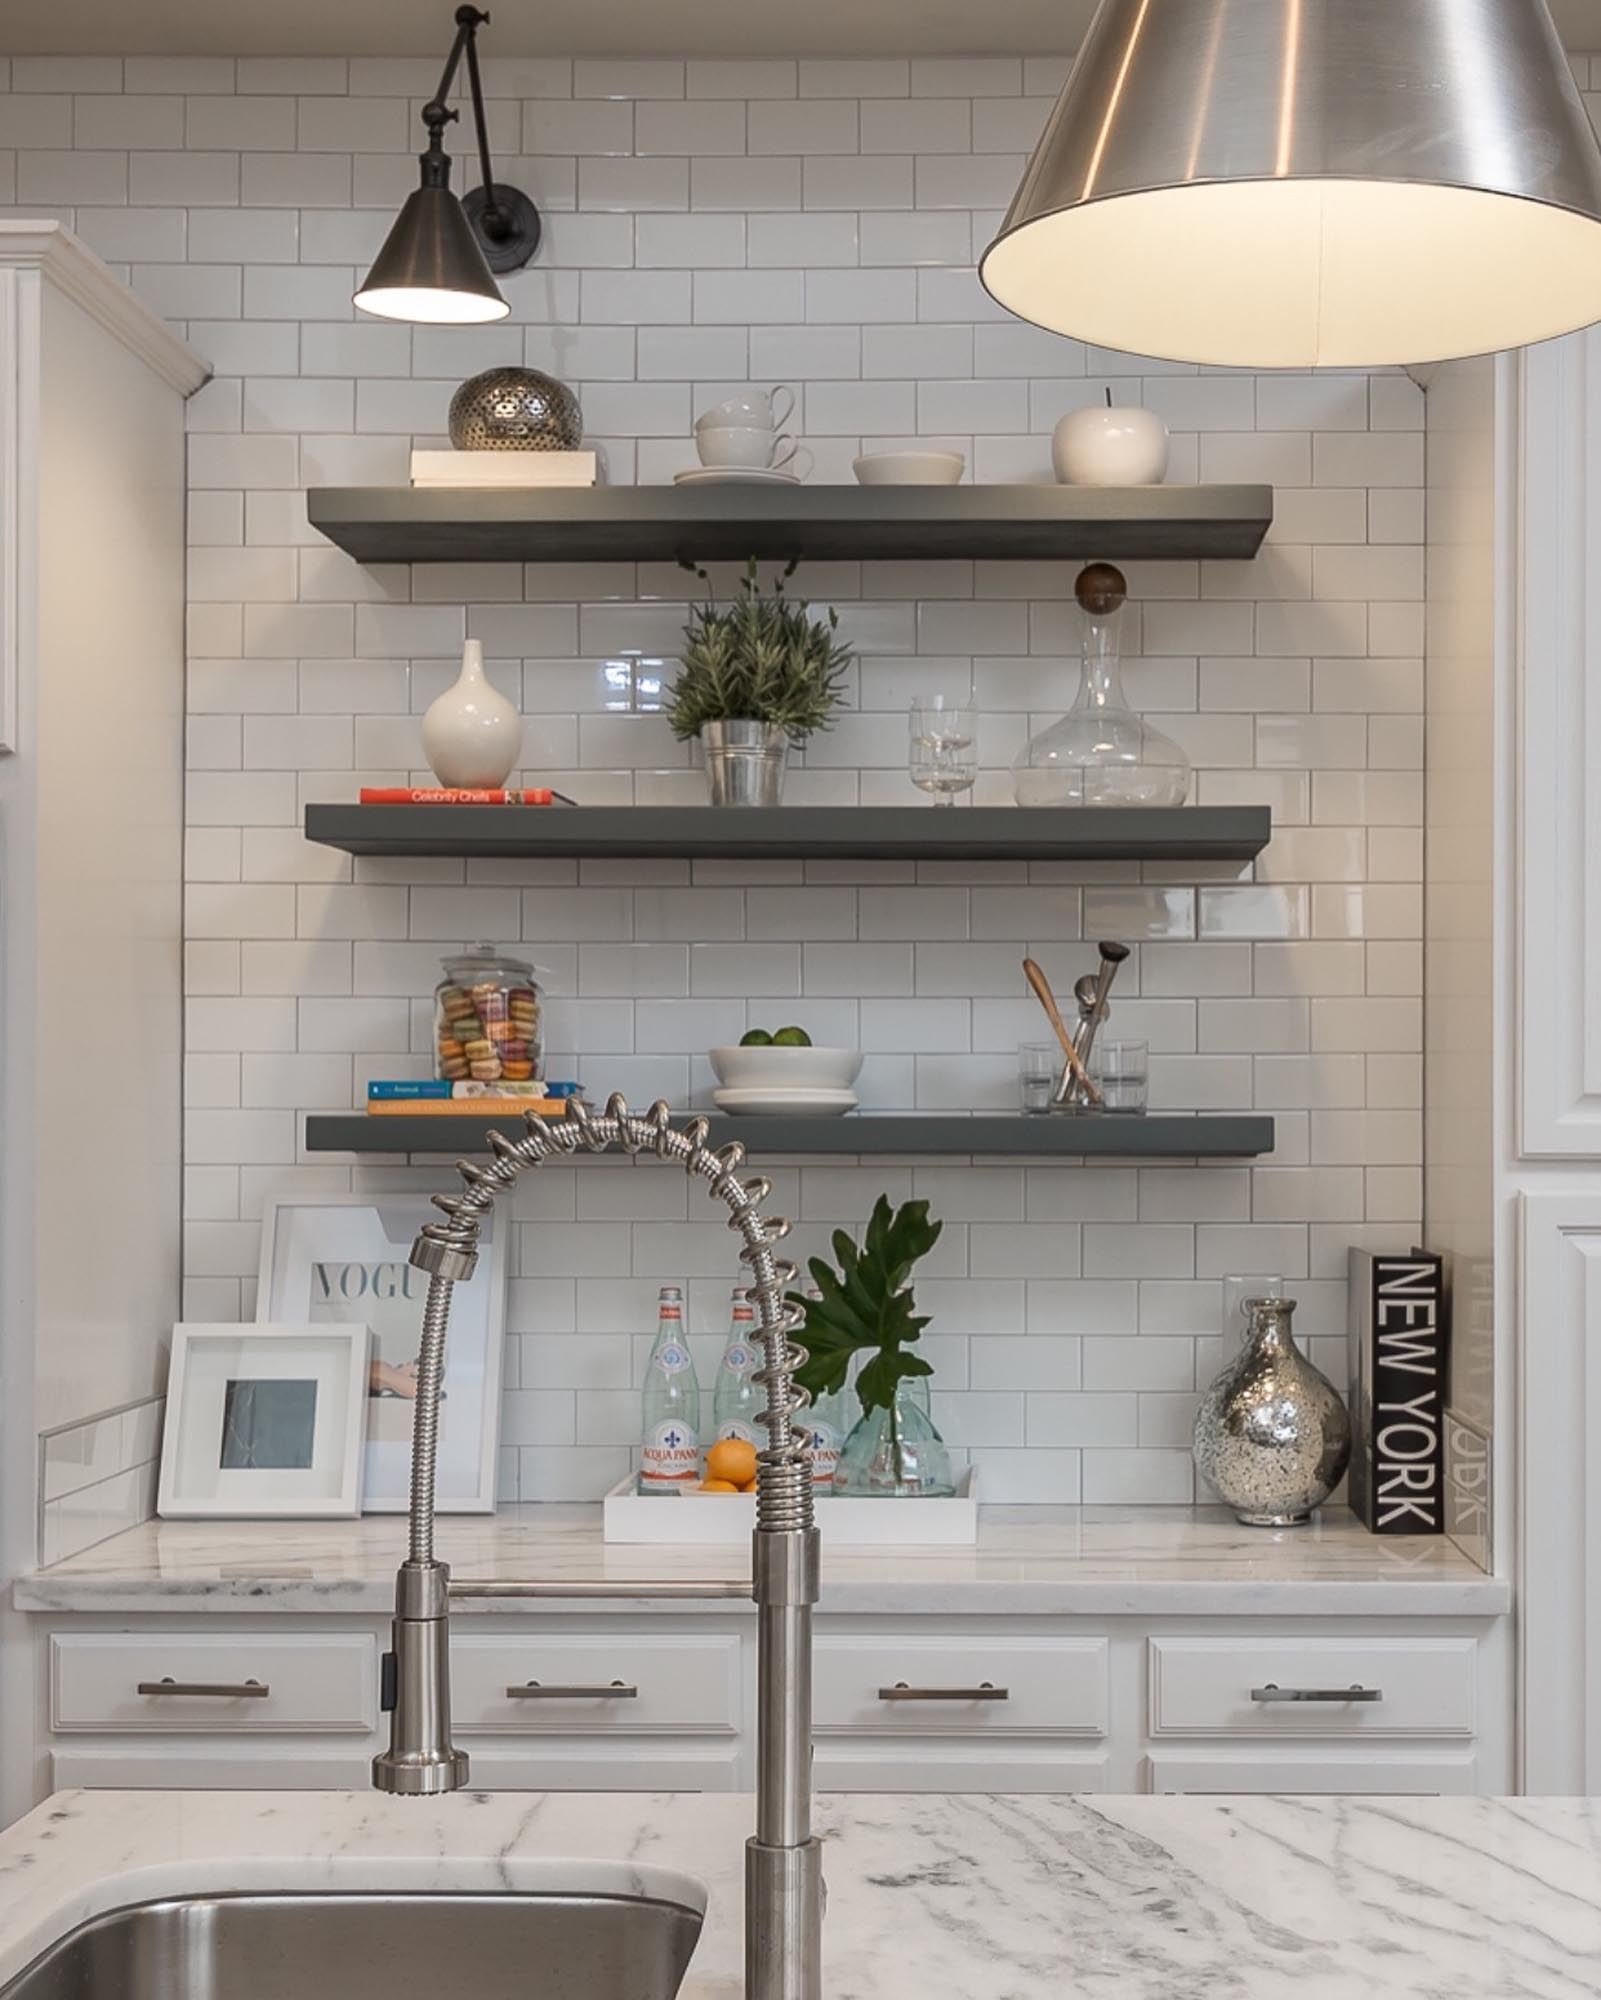 Kitchen with gray shelves and decorations on white wall